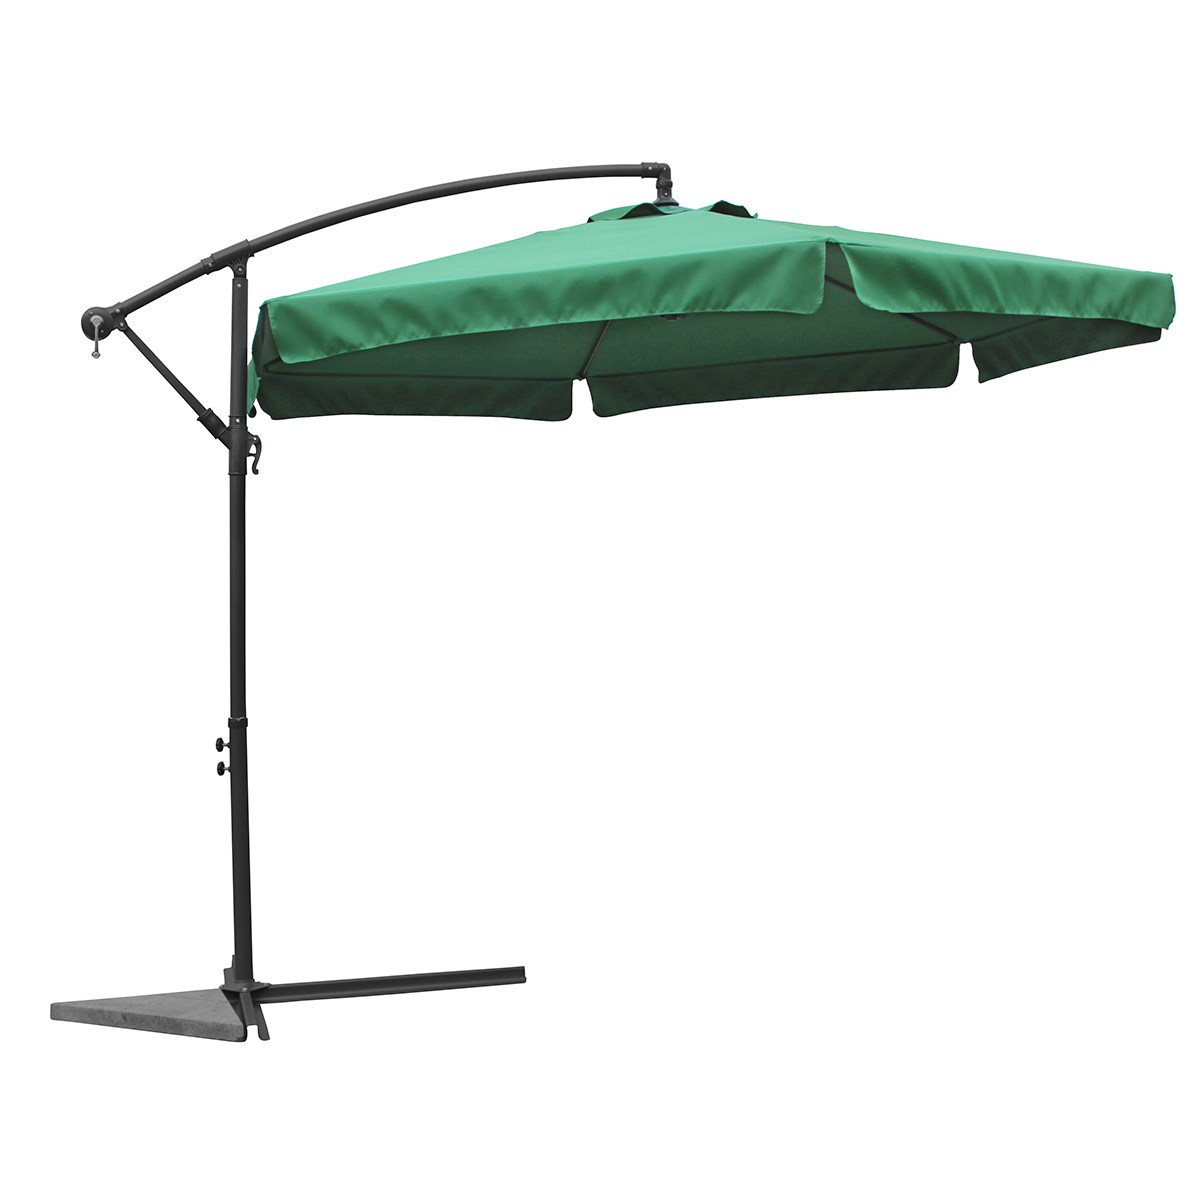 grand parasol 3 5m nico vert tr s stable inclinable avec manivelle jardin piscine. Black Bedroom Furniture Sets. Home Design Ideas